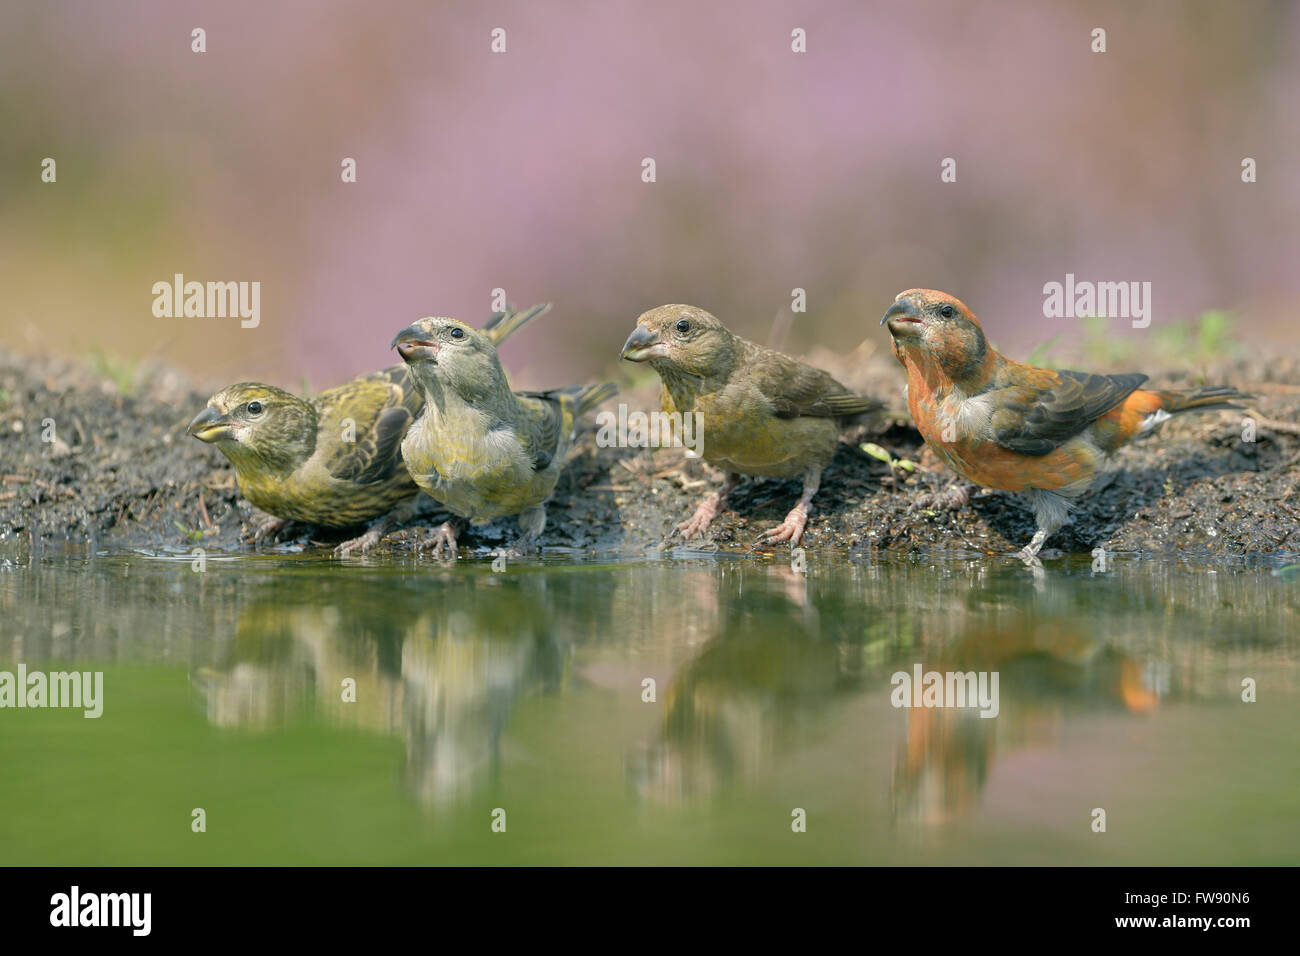 A whole family of Common Crossbills (Loxia curvirostra) / Fichtenkreuzschnaebel drinking at a pond in midst of blooming - Stock Image